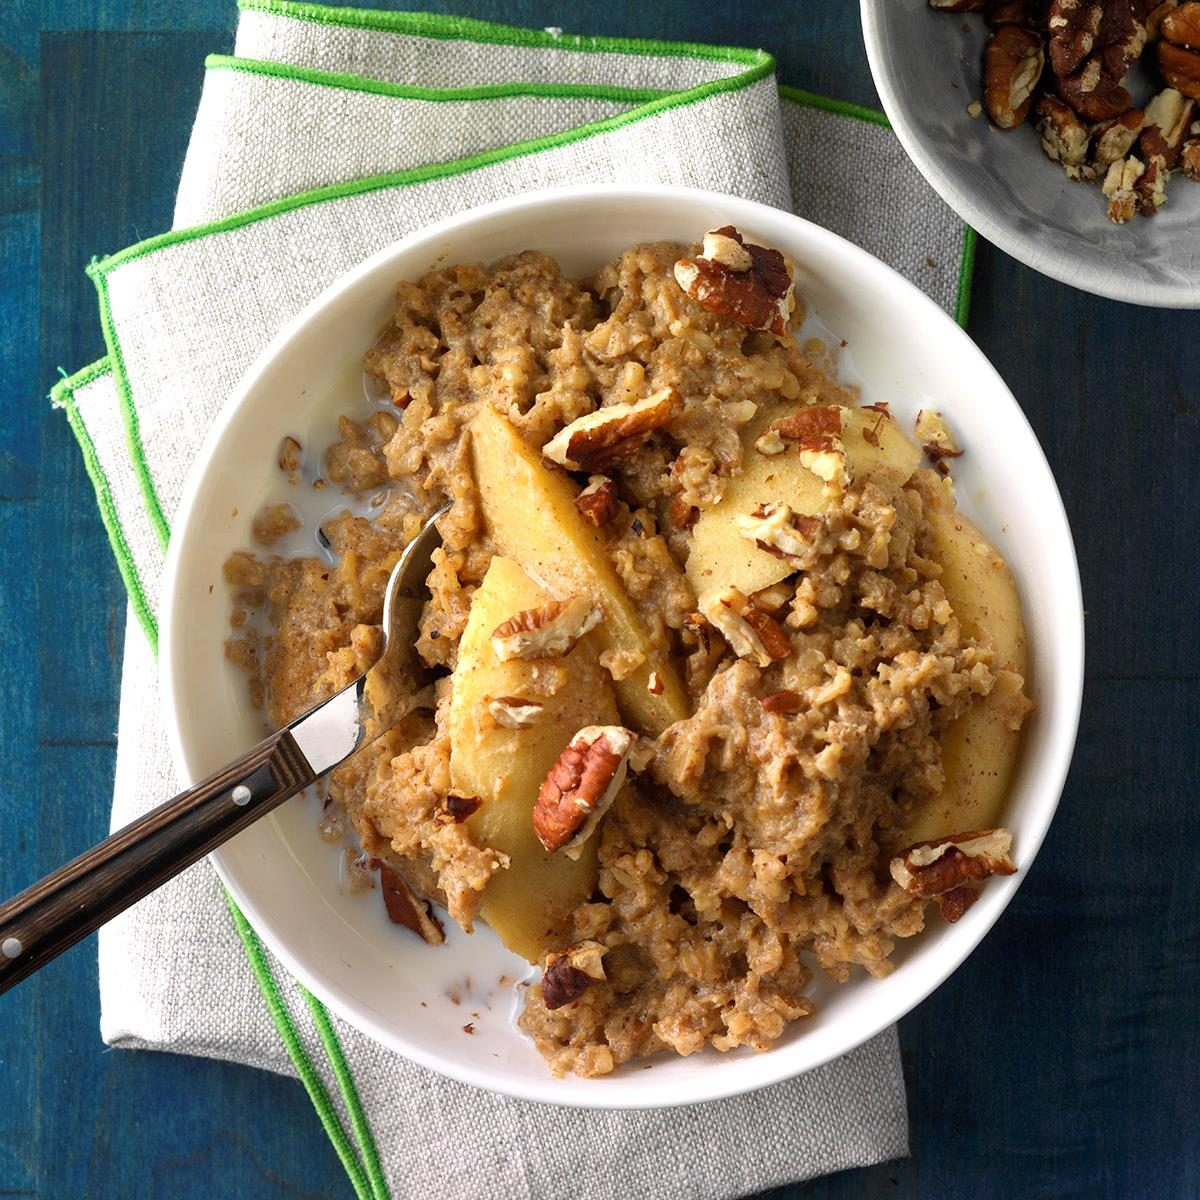 Spiced apple oatmeal